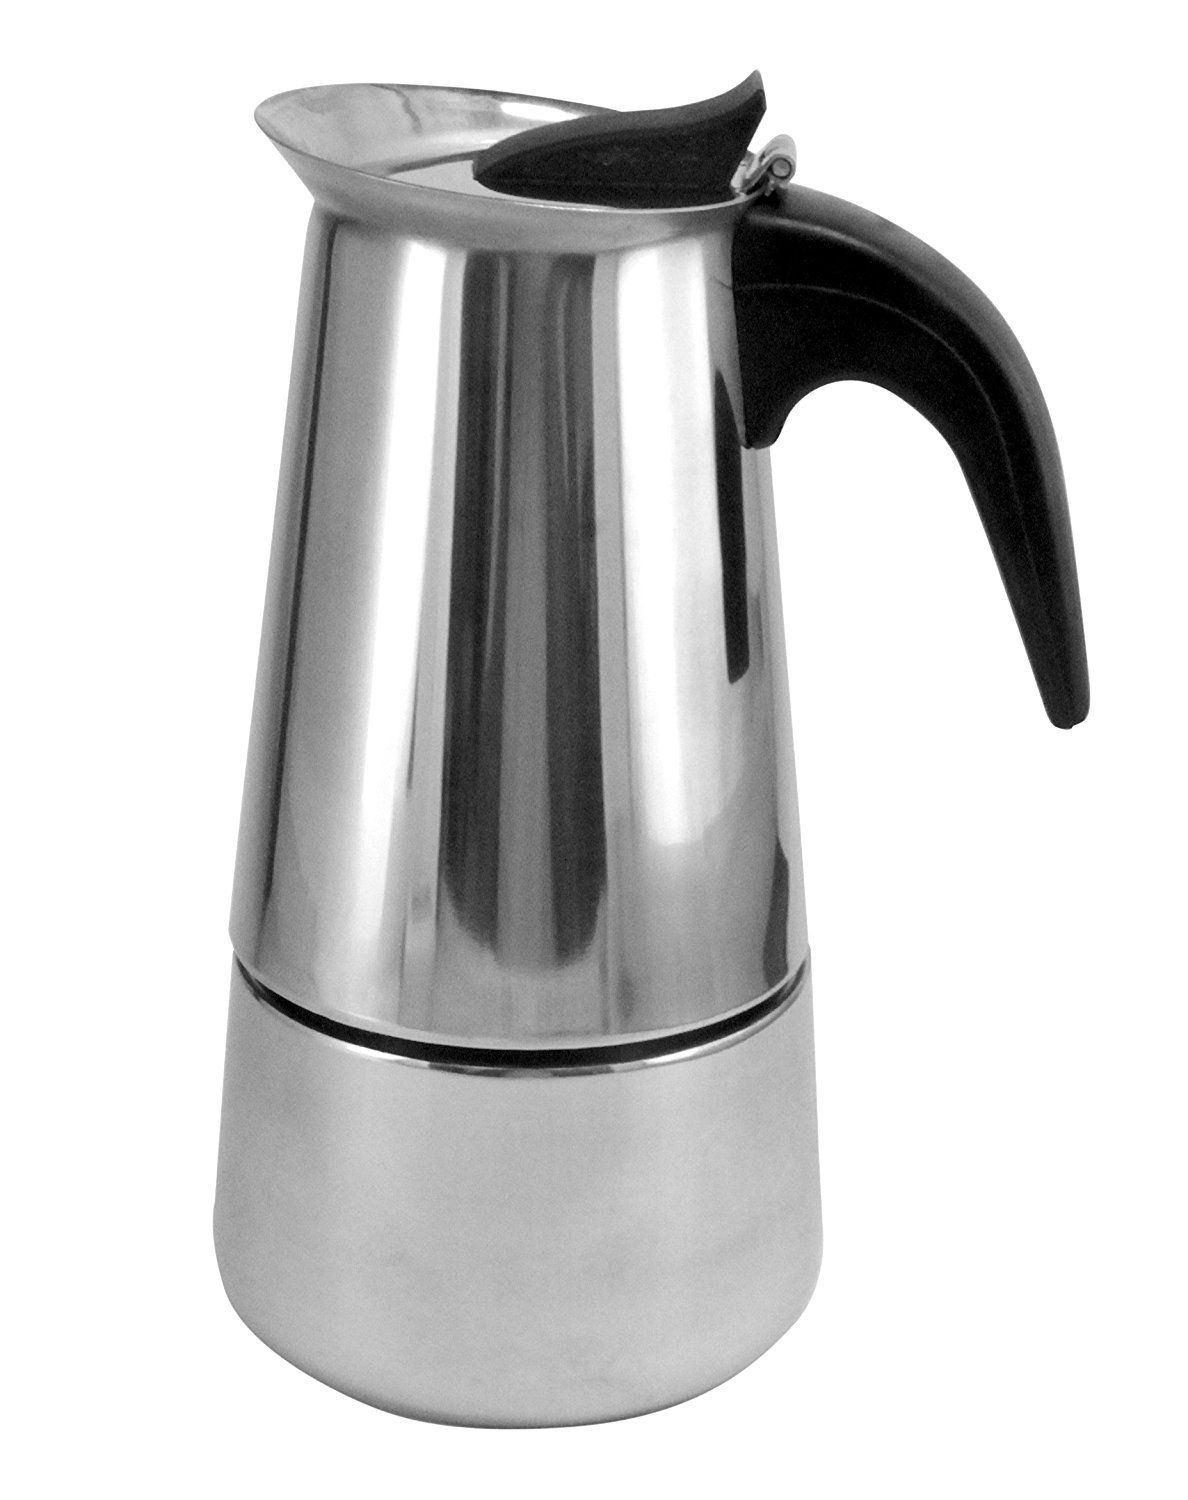 Wee s Beyond Brew Fresh Stainless Steel Espresso Maker 6 Cup